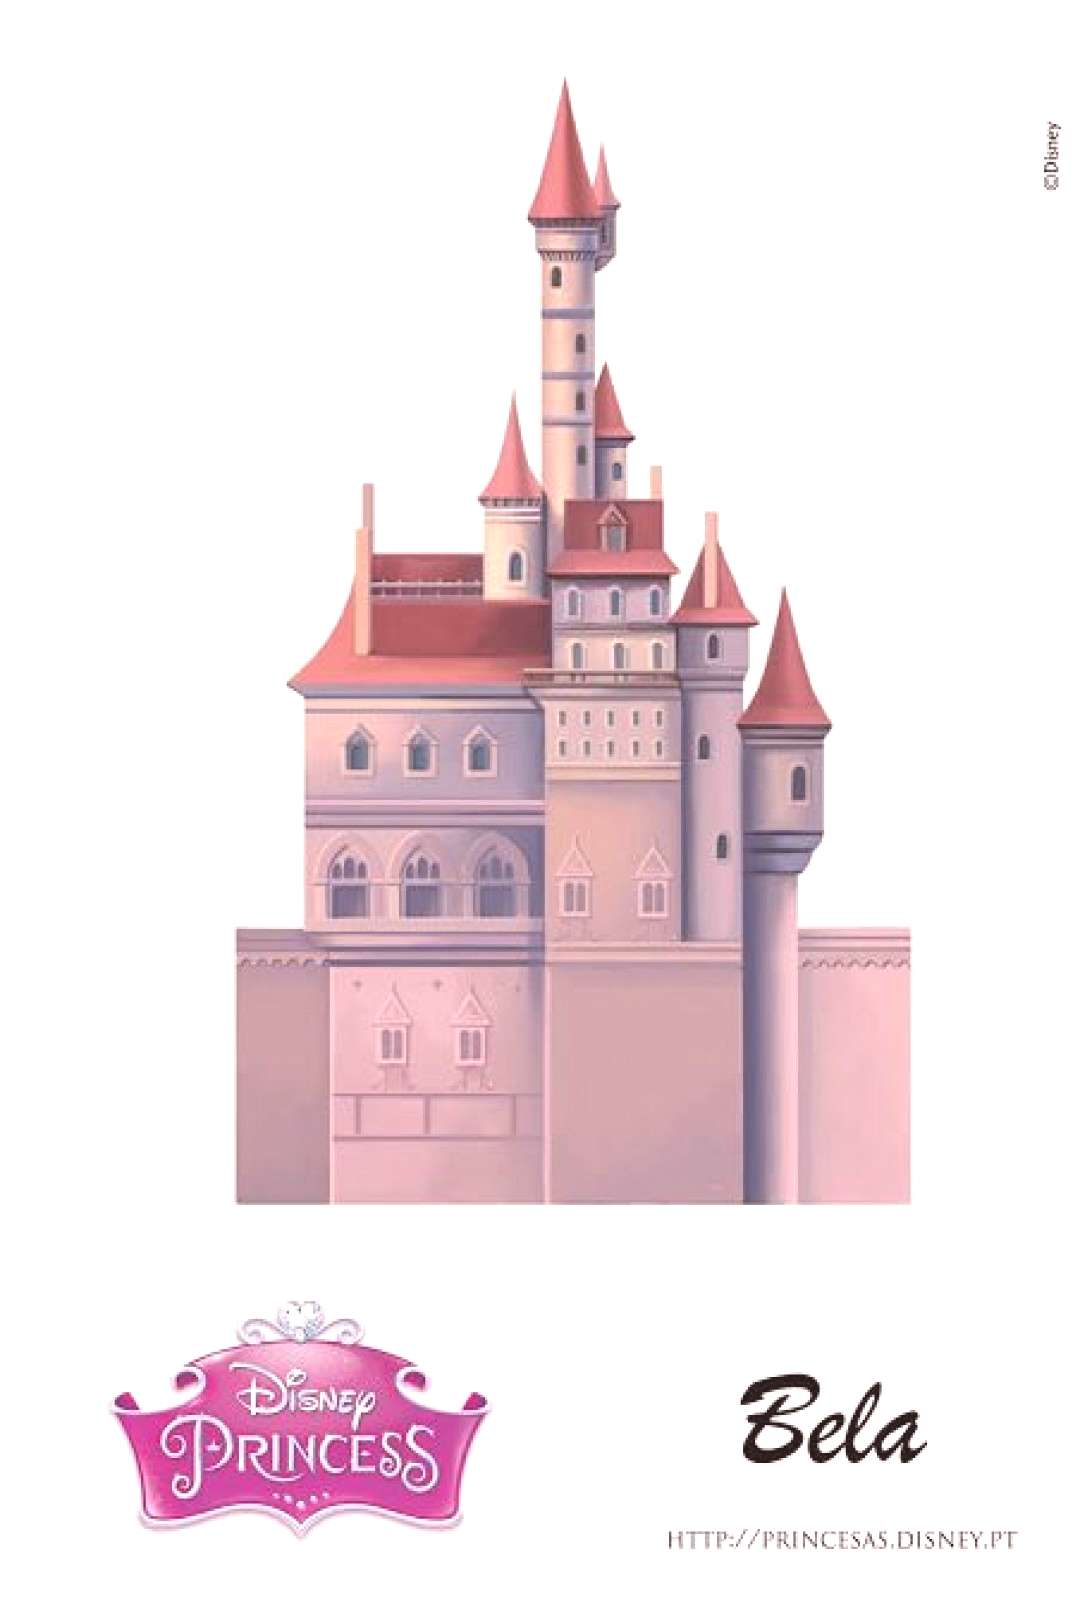 We keep adding the printable castles of the Disney Princesses. Today I ac ... - -